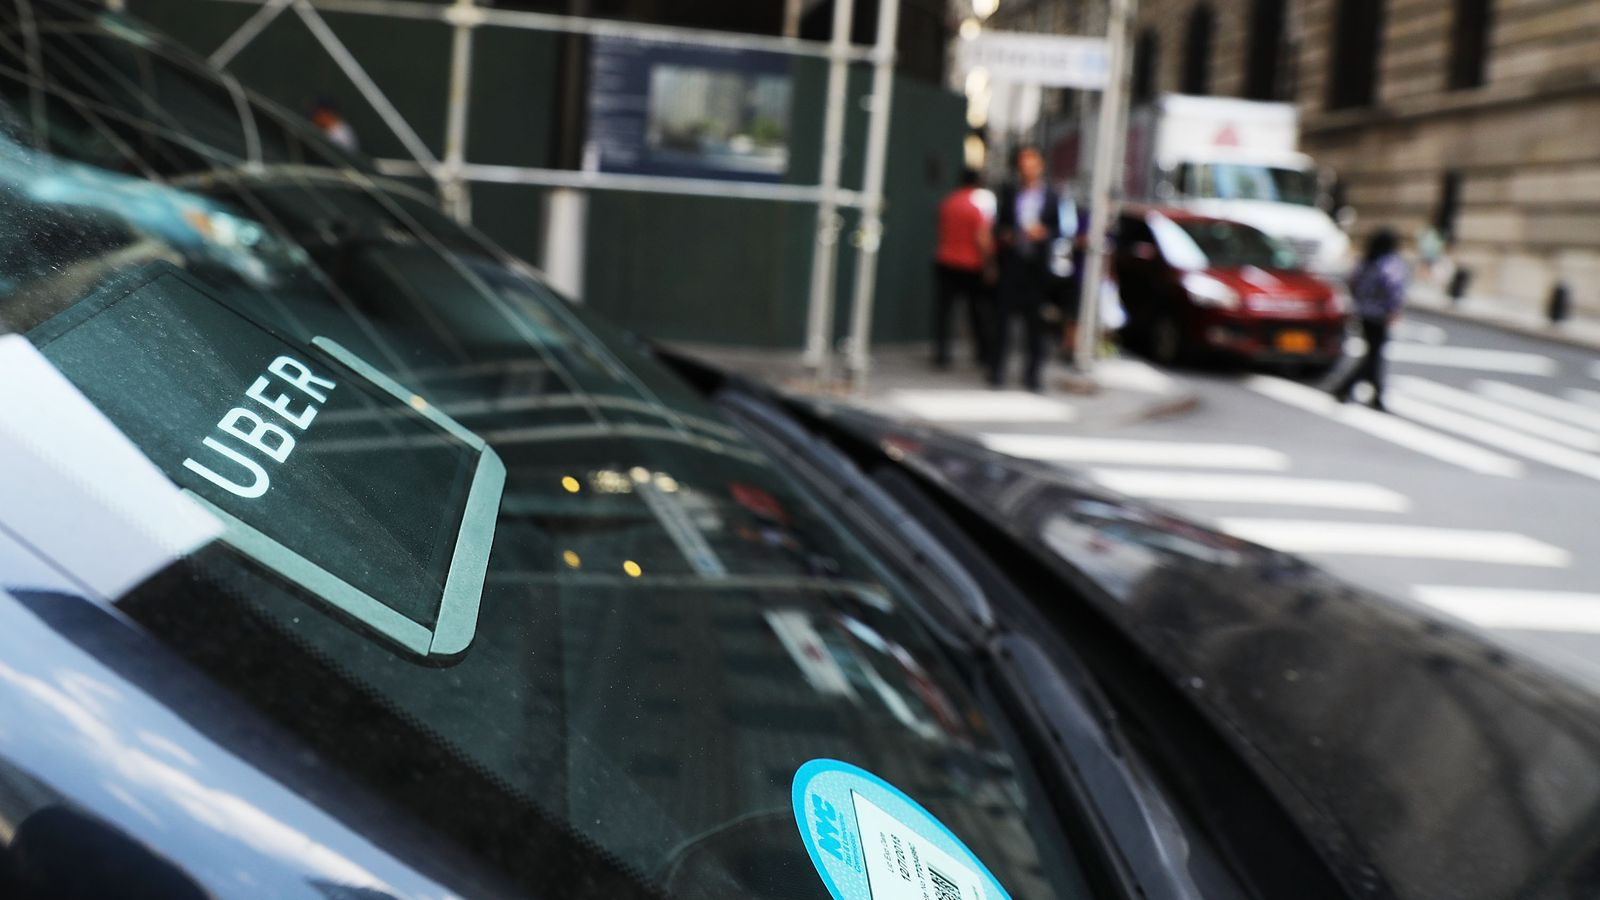 Uber is curbing its losses and growing its business while it searches for a new CEO